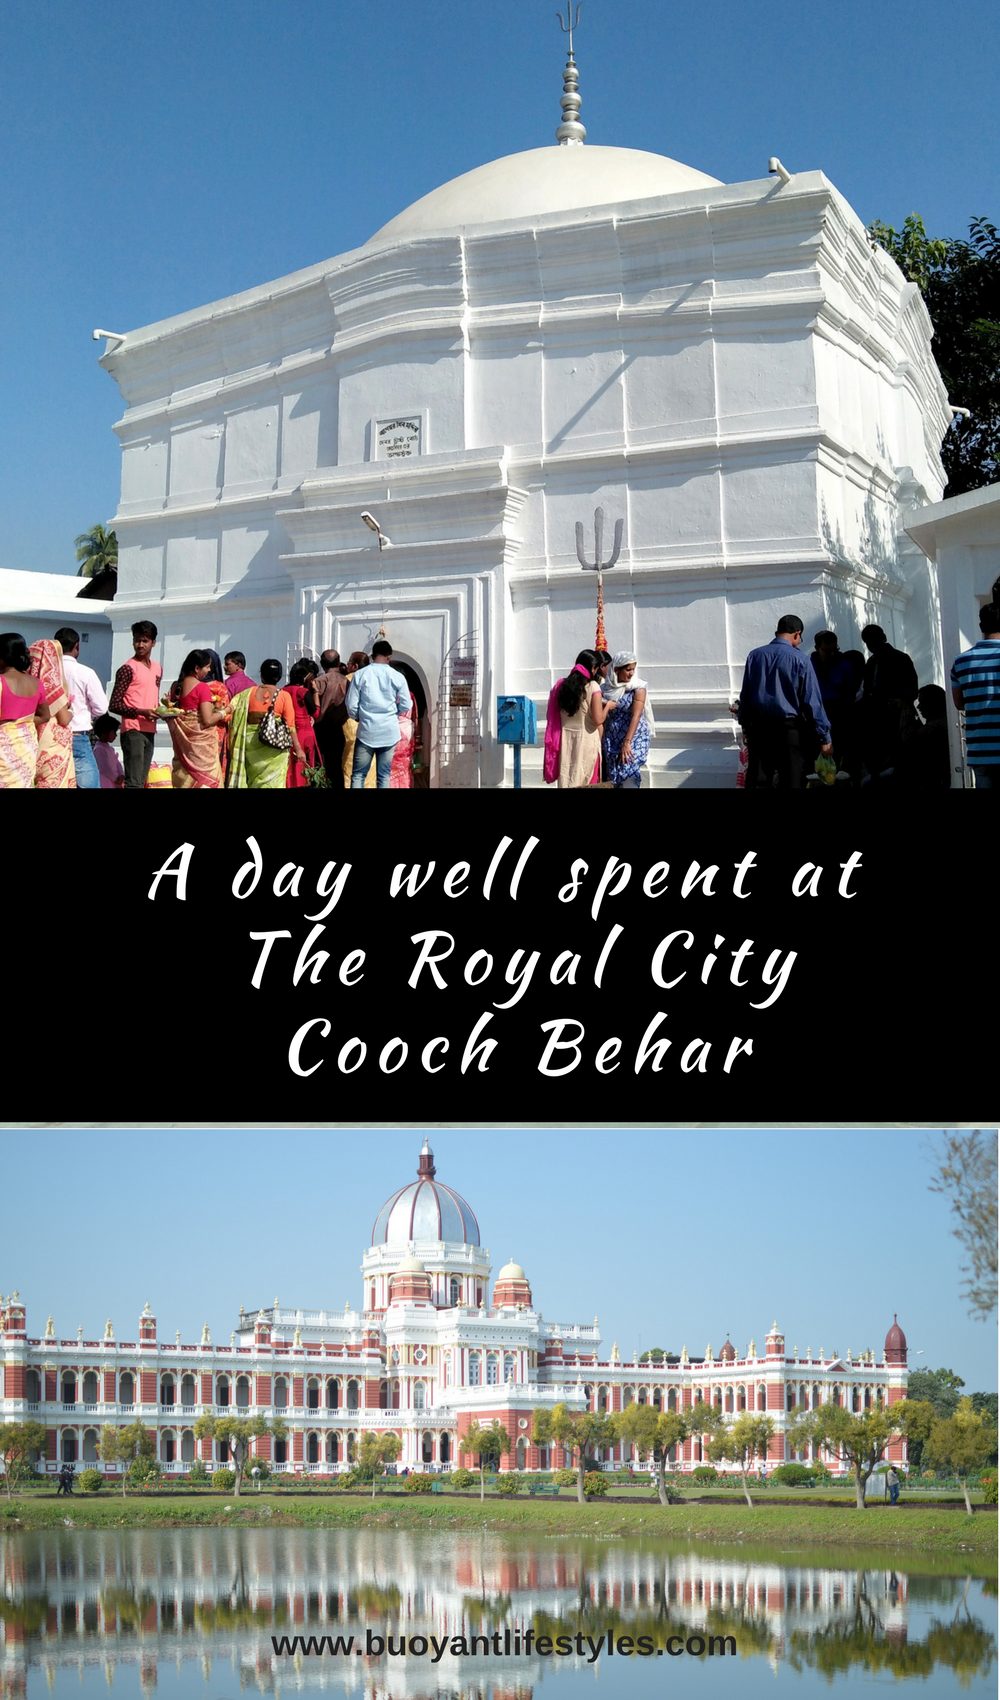 A day well spent at The Royal City Cooch Behar (1)